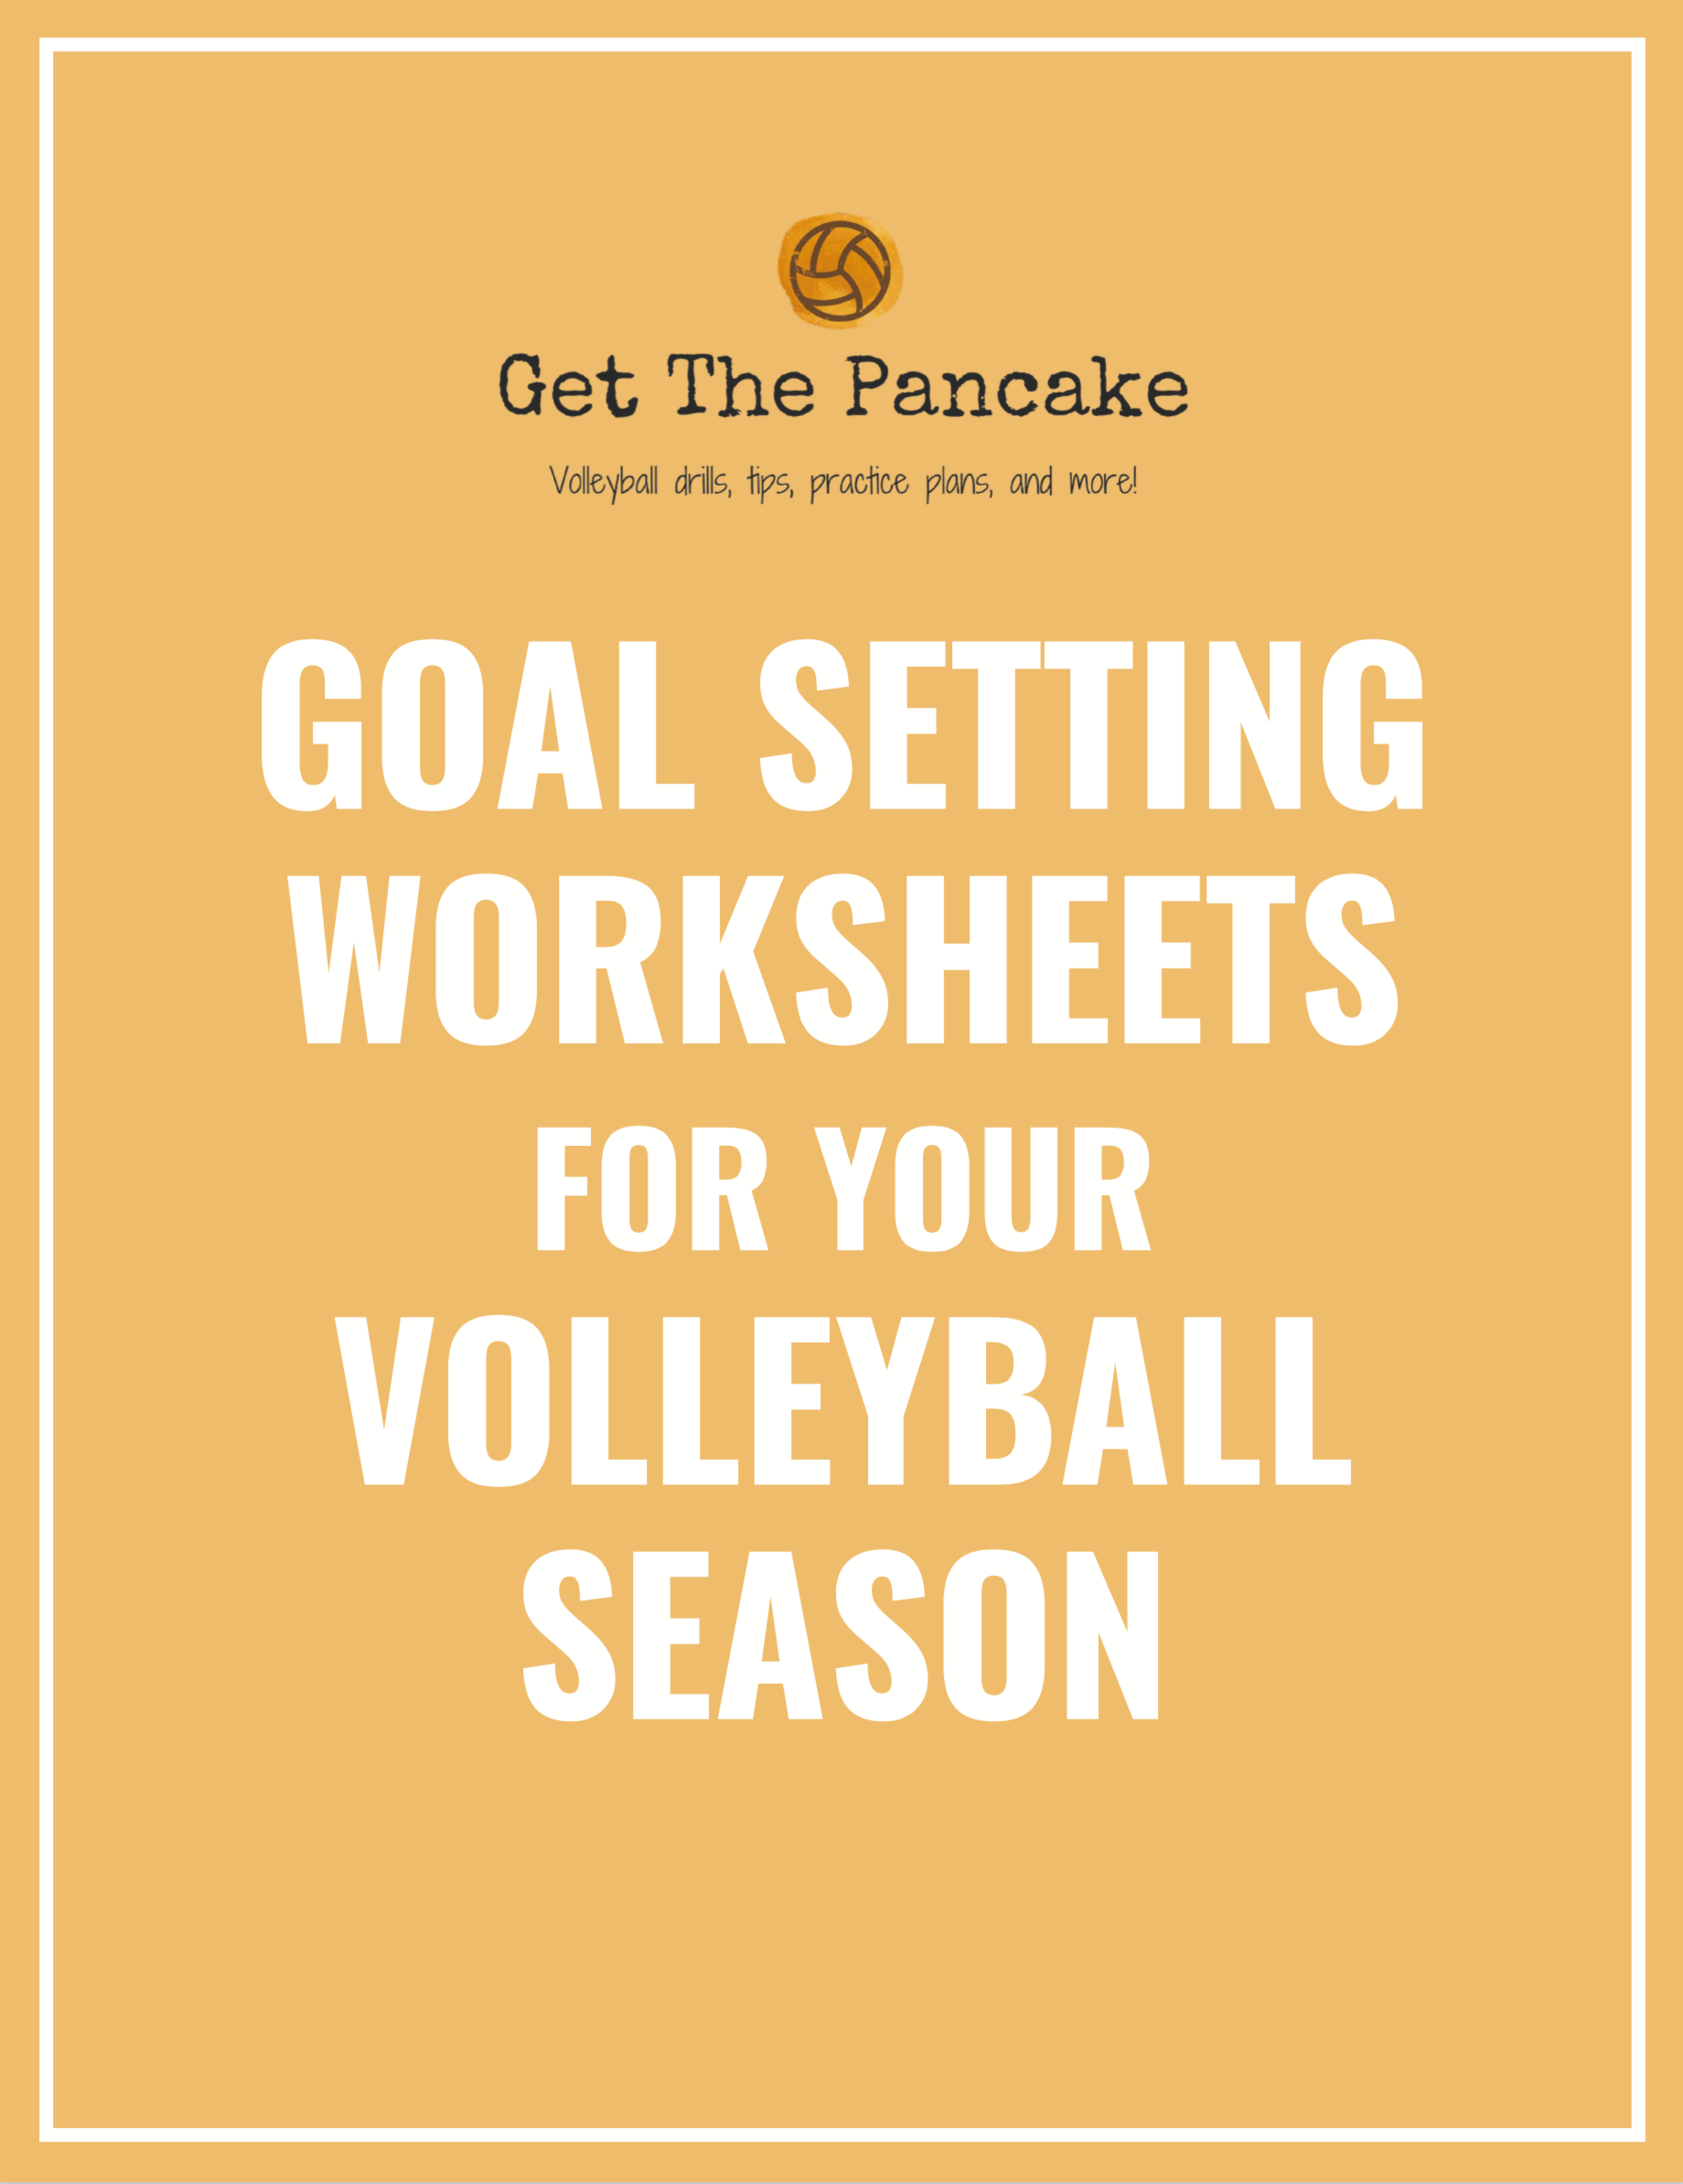 Wondering how to make this season stand out? - Teach your players how to set goals and watch their confidence soar!